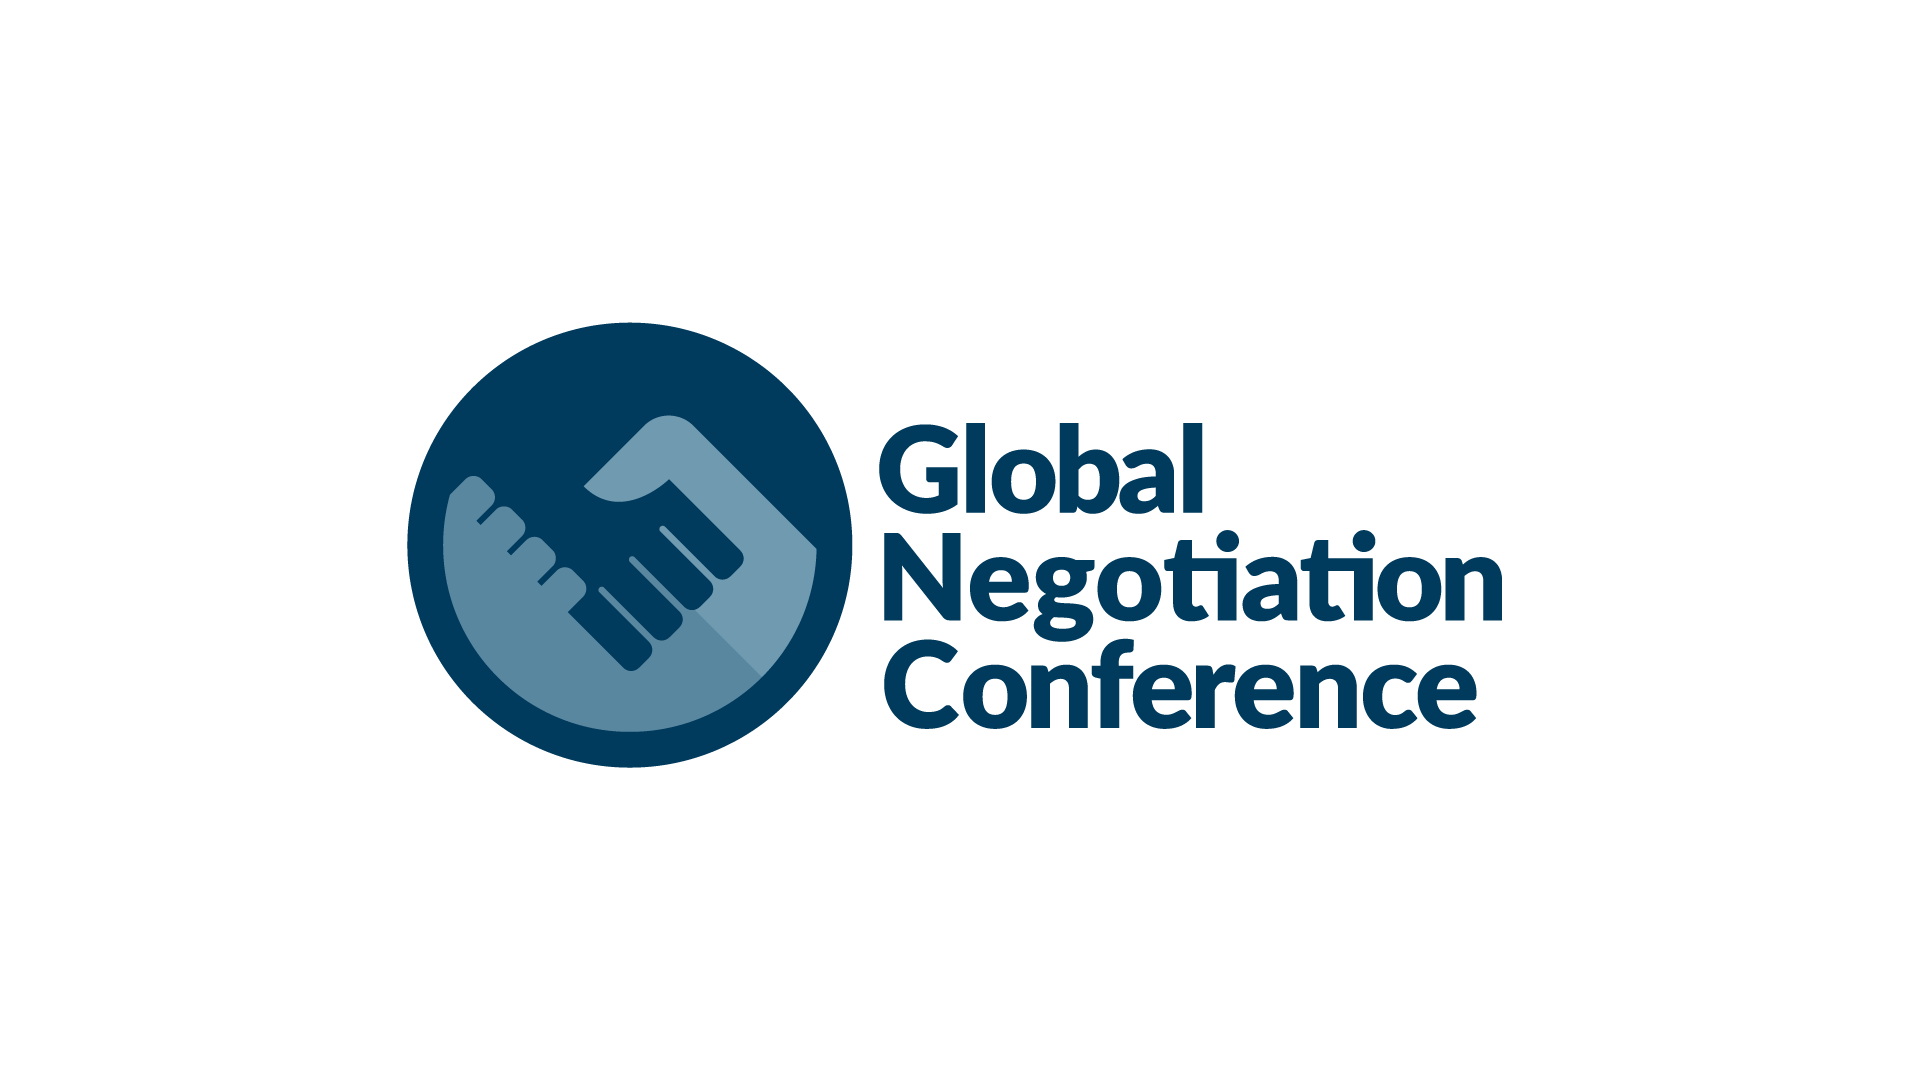 Global Negotiation Conference